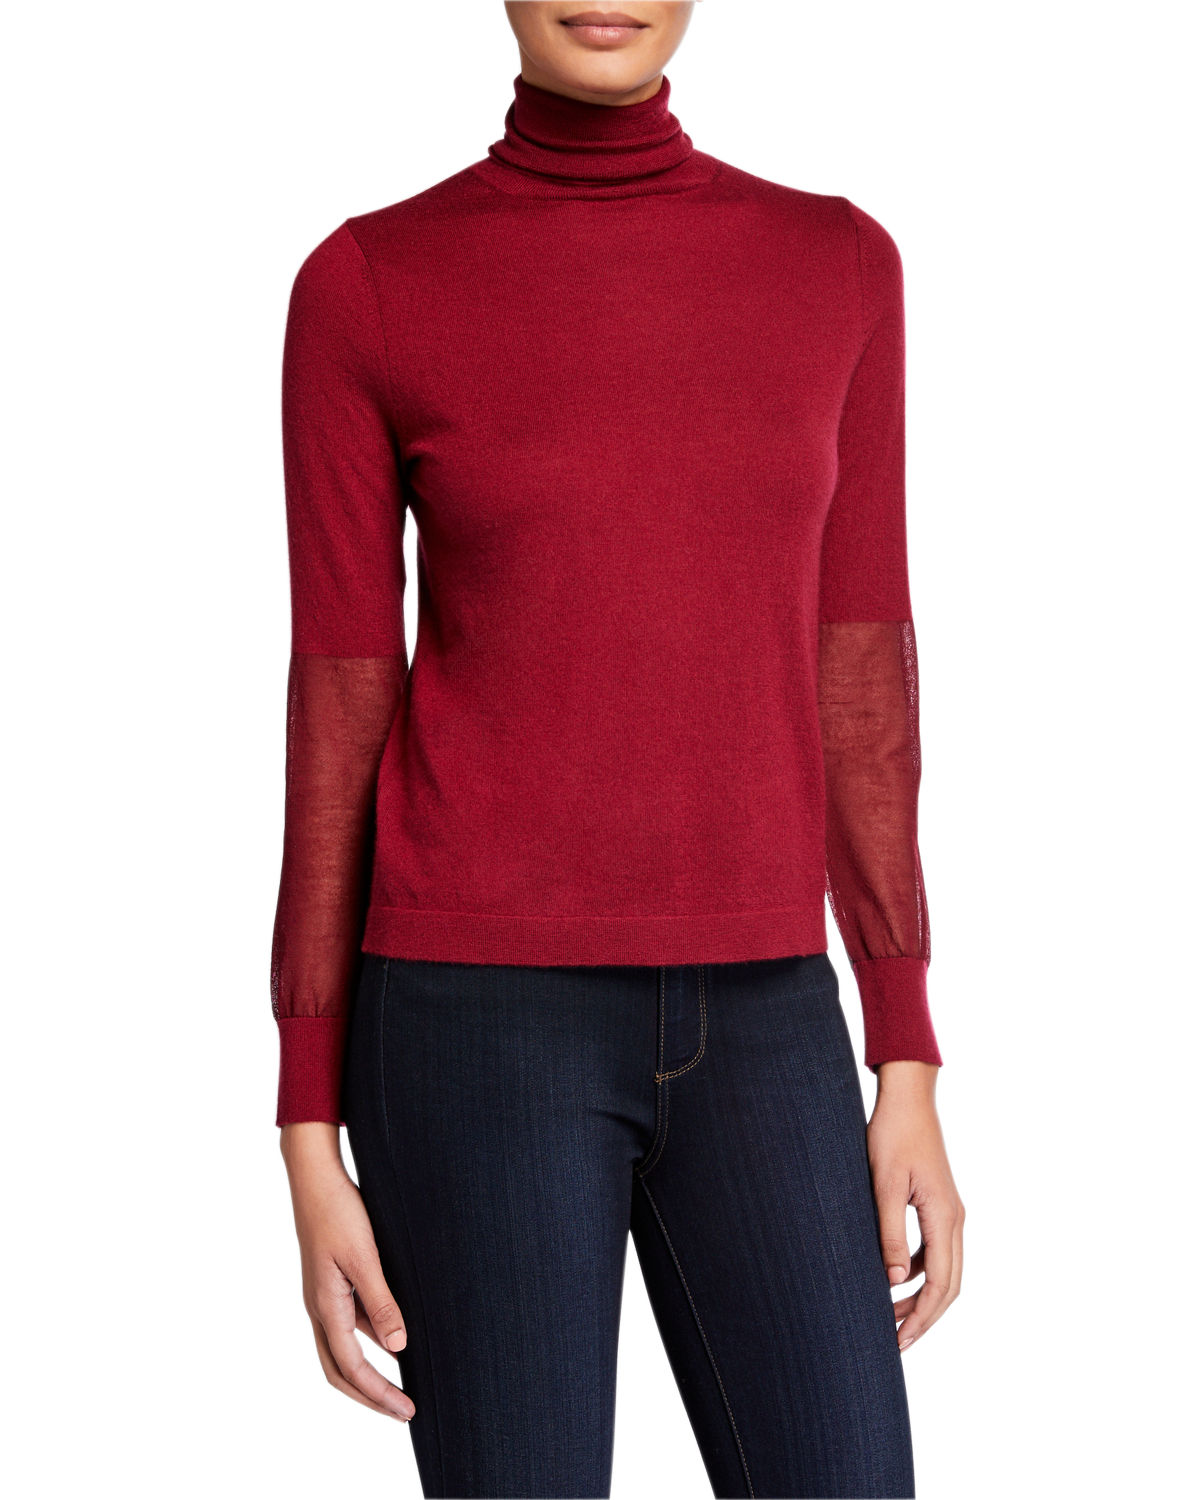 Neiman Marcus SUPERFINE CASHMERE TURTLENECK SWEATER WITH SHEER PANELS